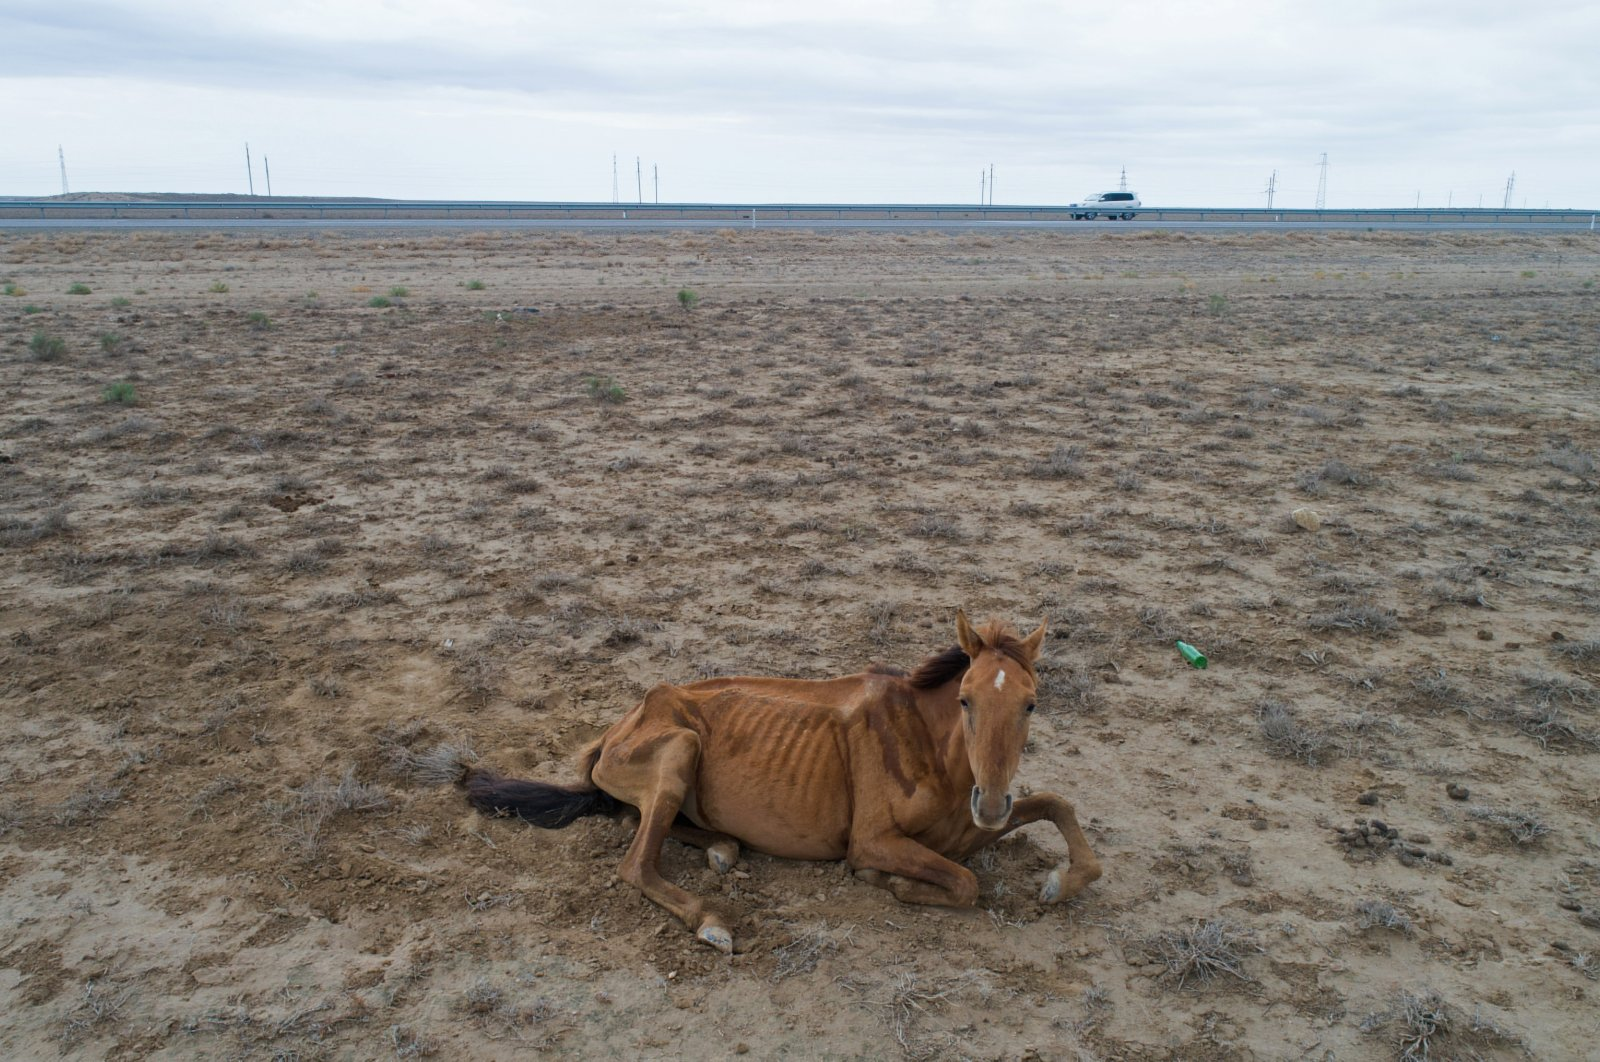 An emaciated horse lies by the road outside the town of Munayshi amid severe drought in Mangistau Region, Kazakhstan, on July 28, 2021. (Reuters Photo)